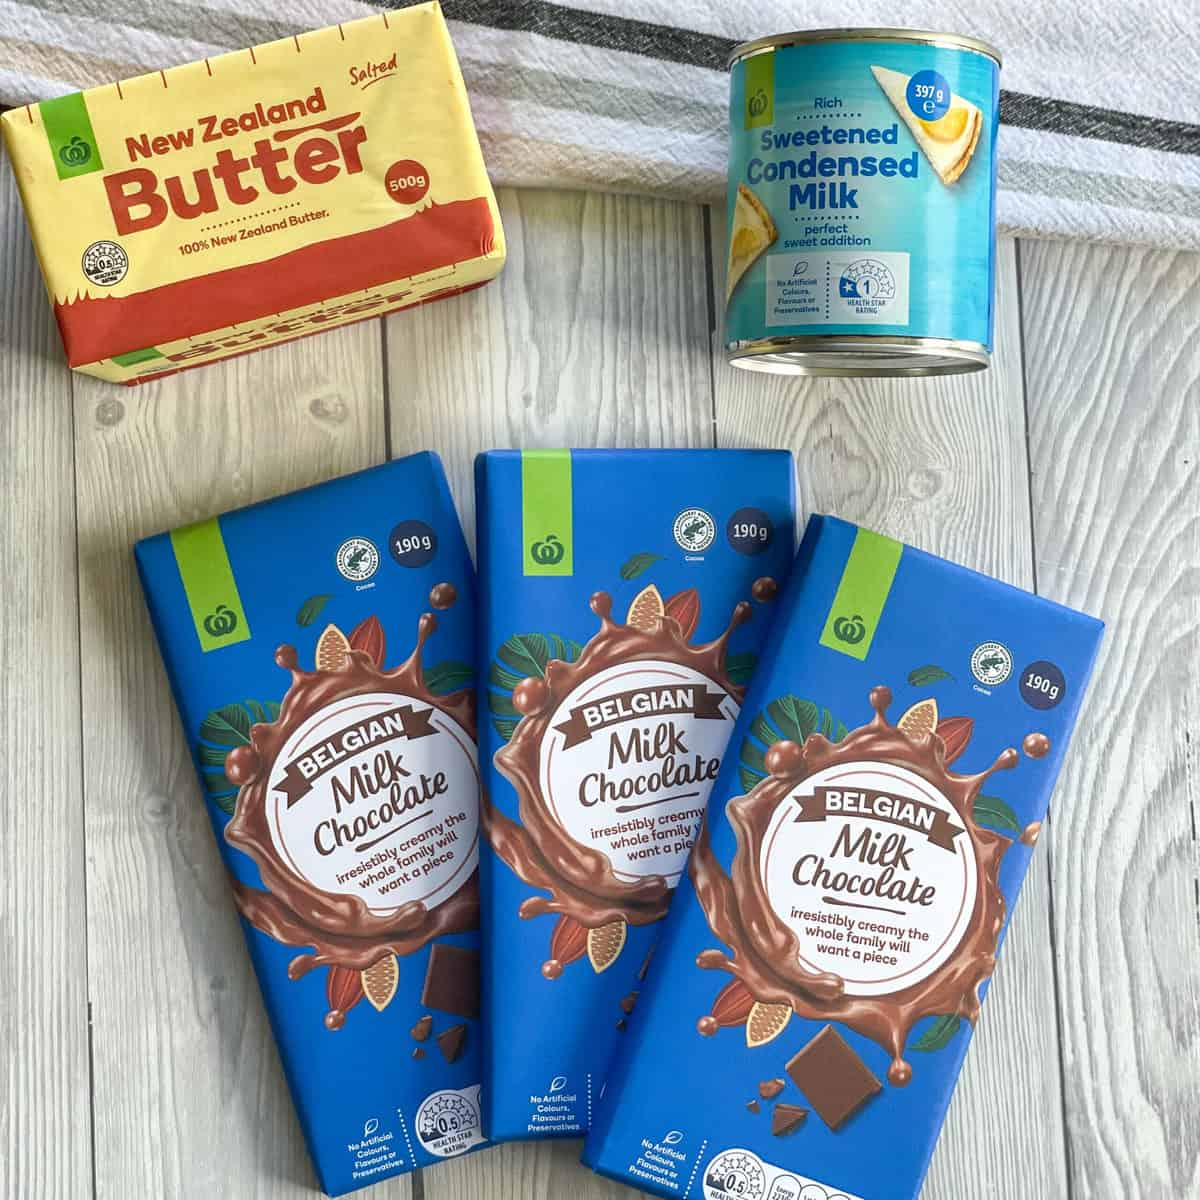 3 Ingredients used for milk chocolate fudge, milk chocolate, condensed milk and butter